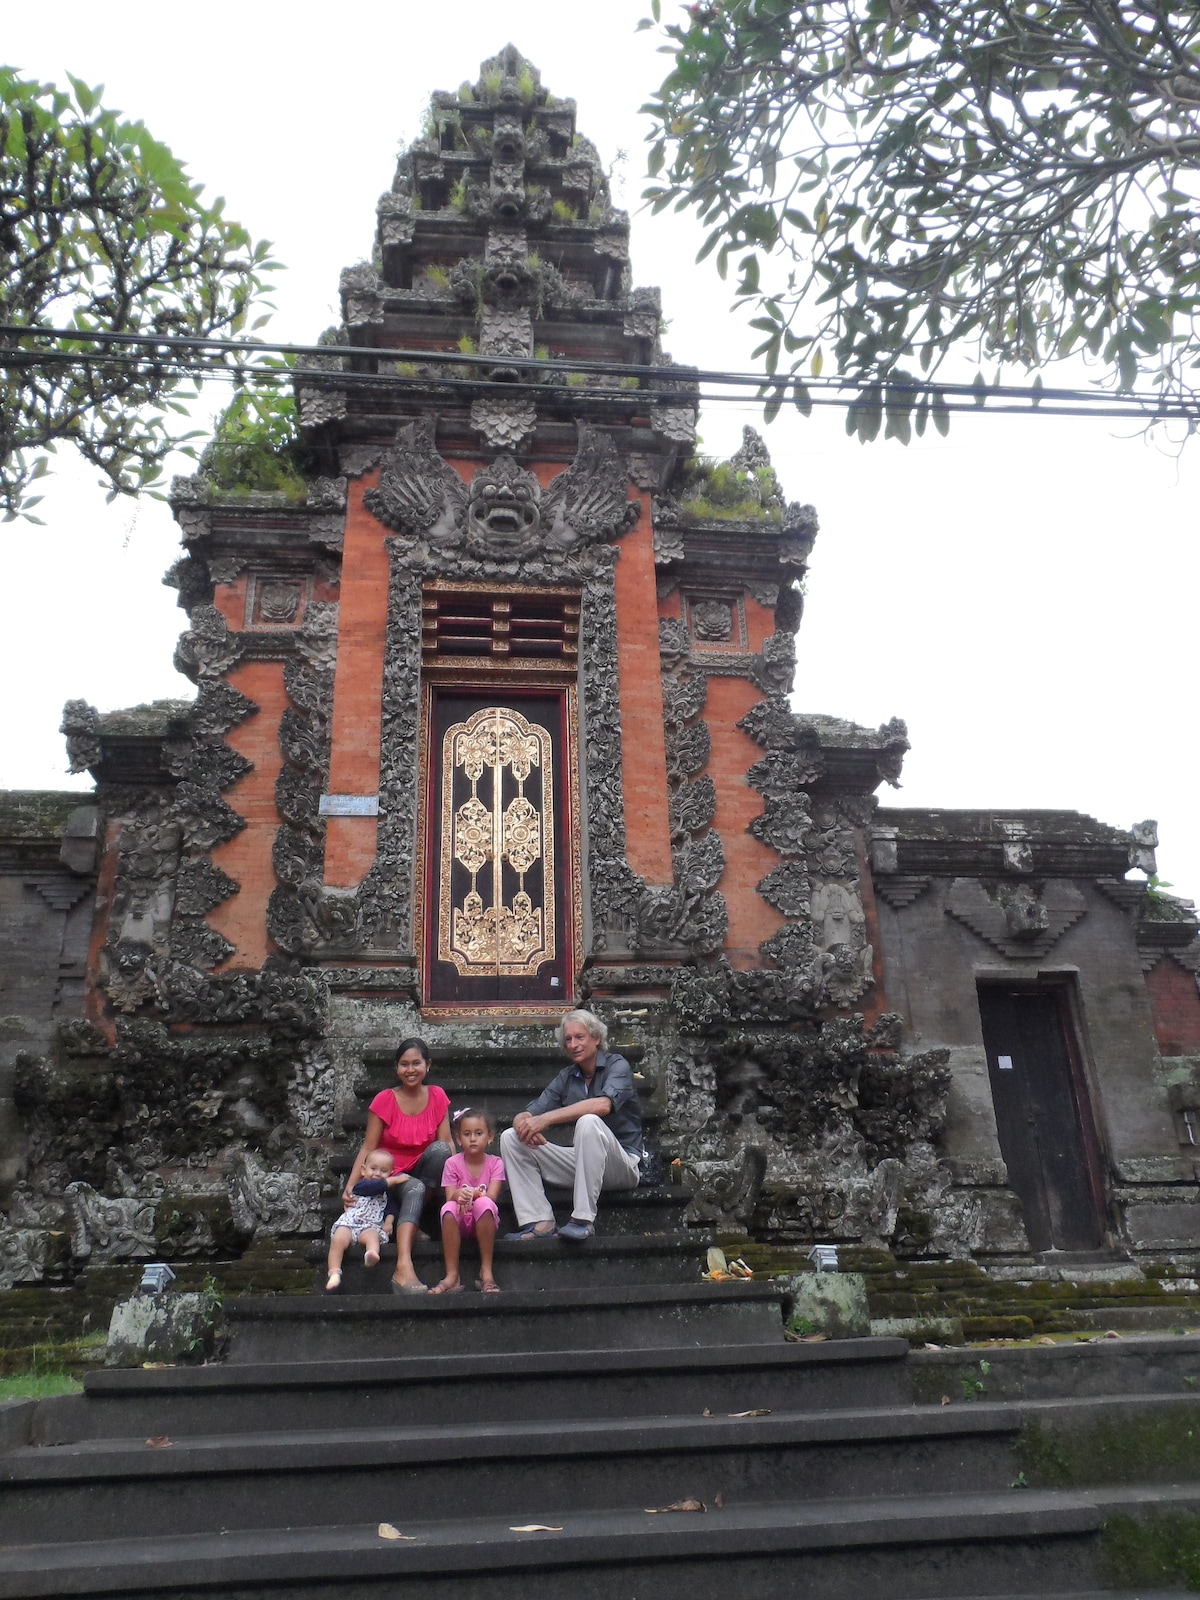 My name is Sri I am a Balinese woman born in Ubud